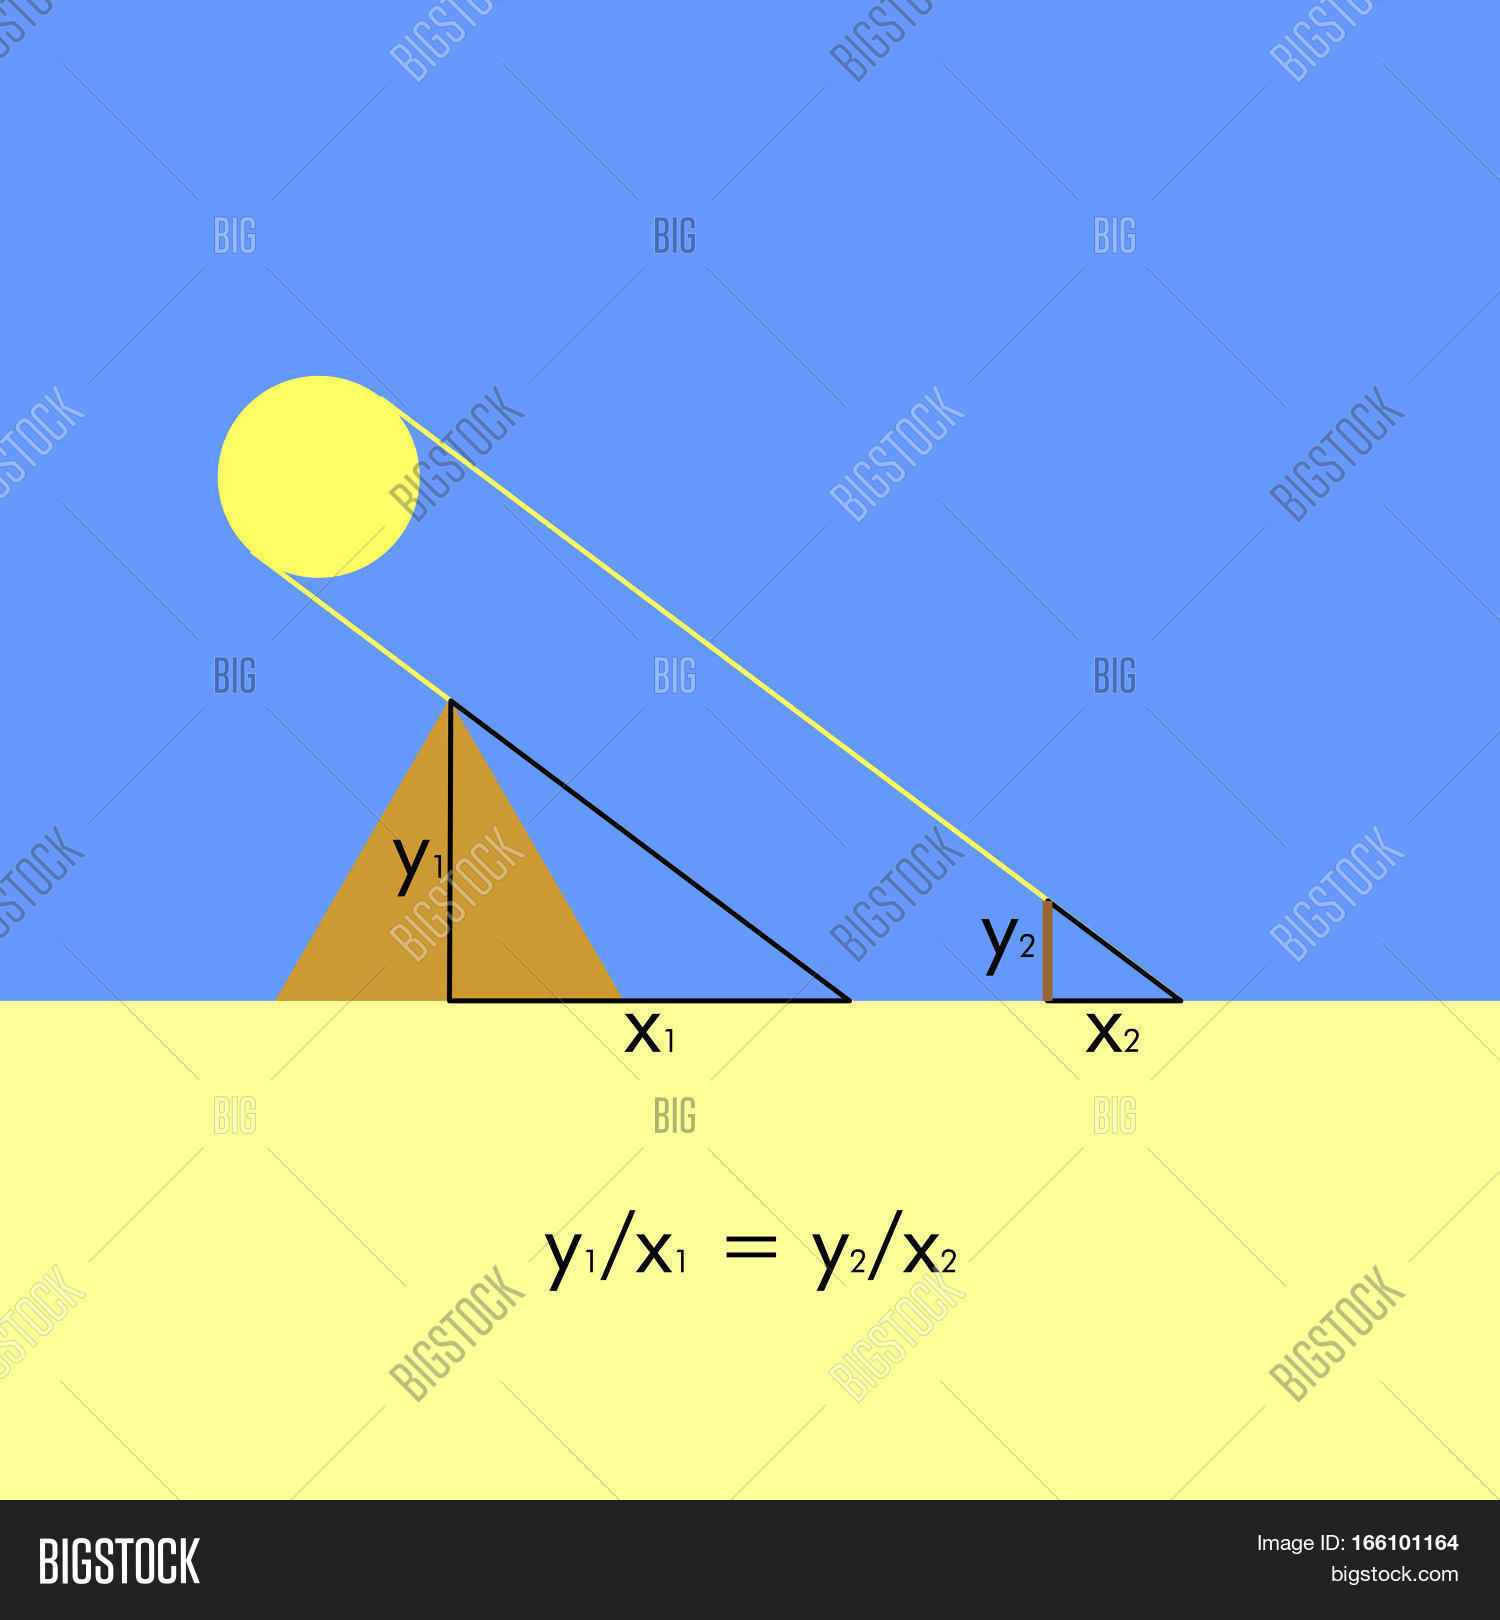 thales,theorem,illustration,measuring,height,pyramid,miletus,sun,rays,triangle,similar,euclid,egypt,egyptian